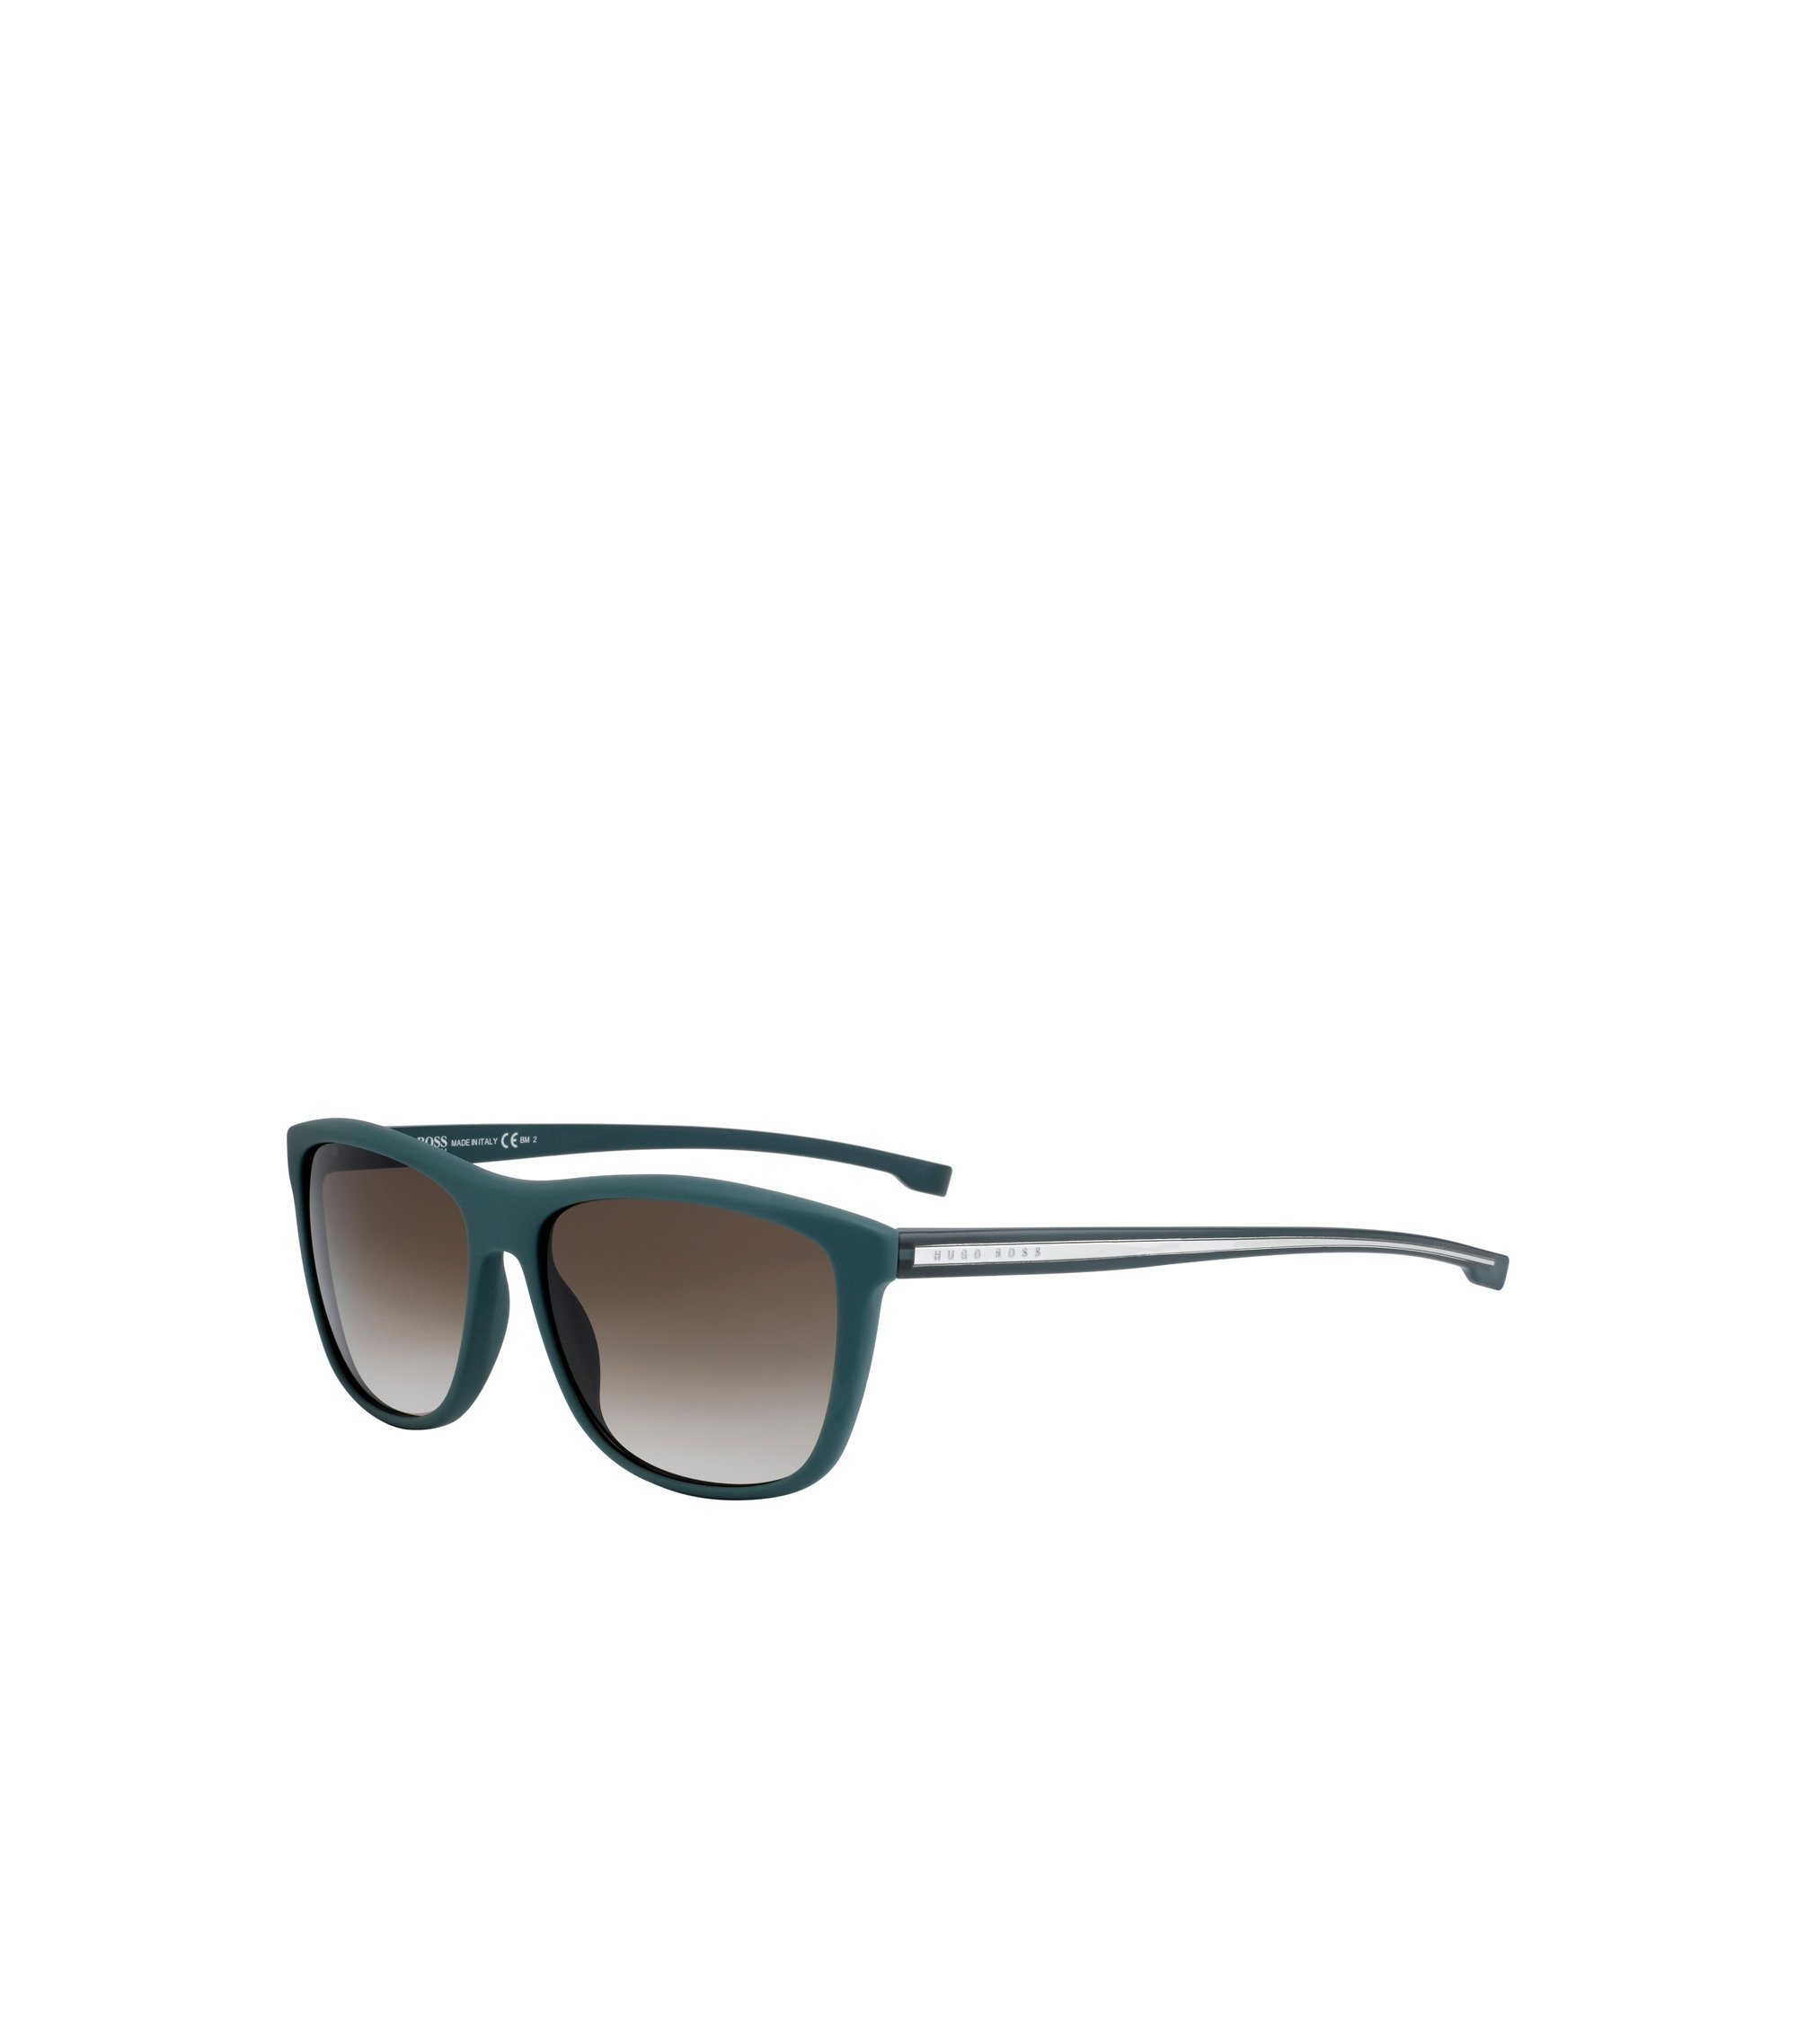 Gradient Lens Top Bar Sunglasses | BOSS 0874, Assorted-Pre-Pack